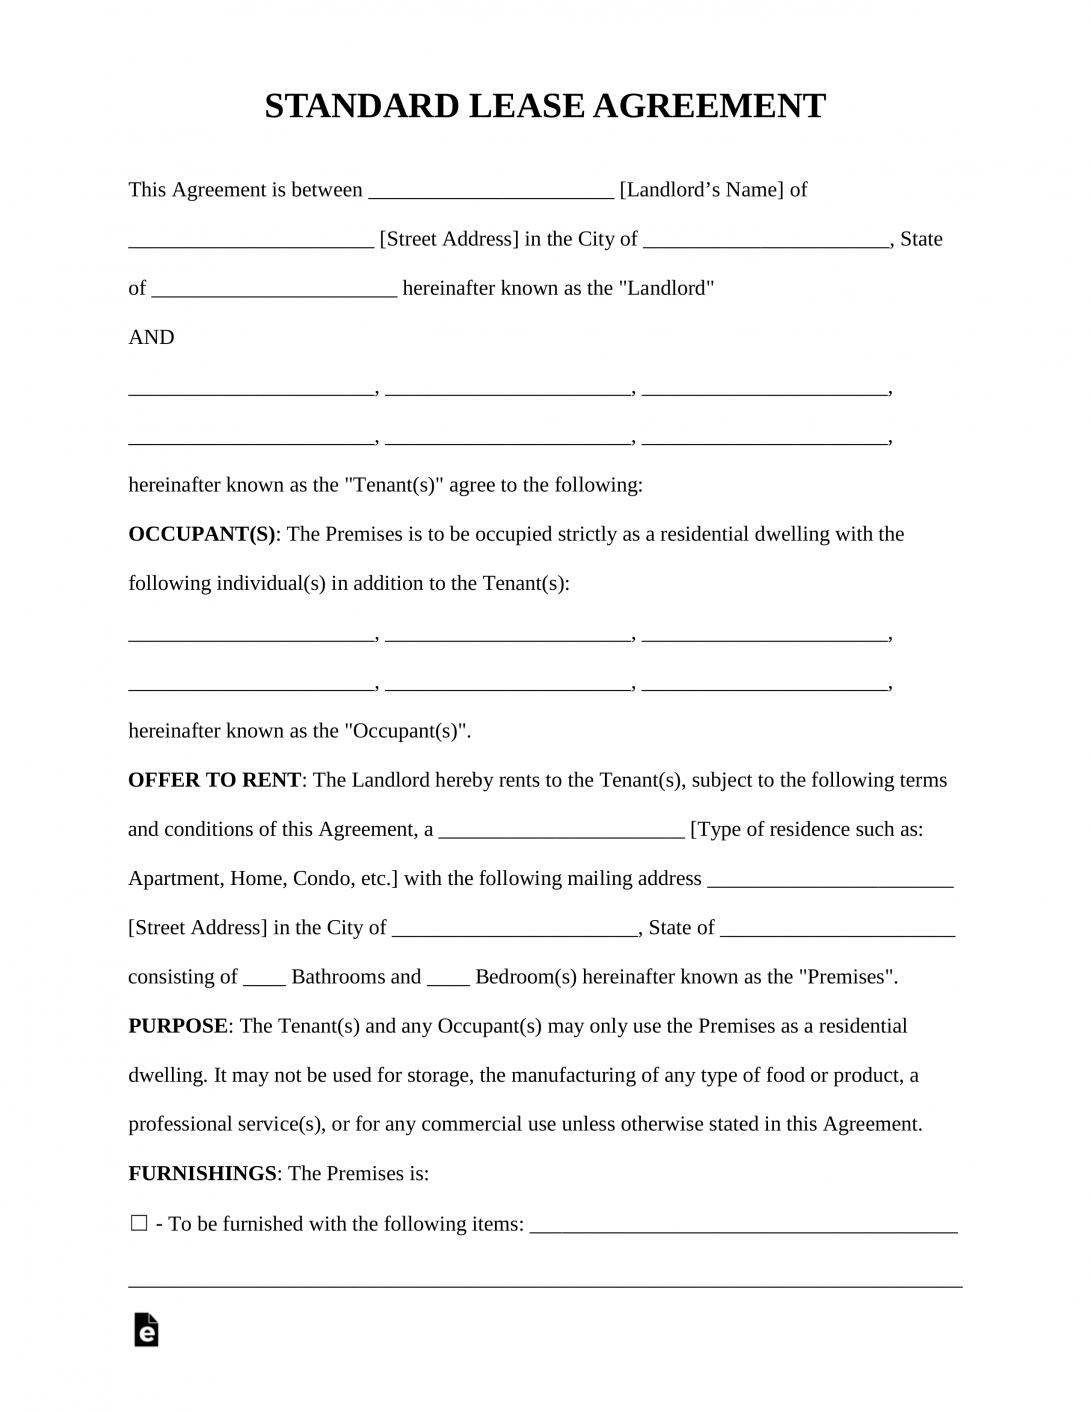 Printable Equipment Lease Agreement Template Word